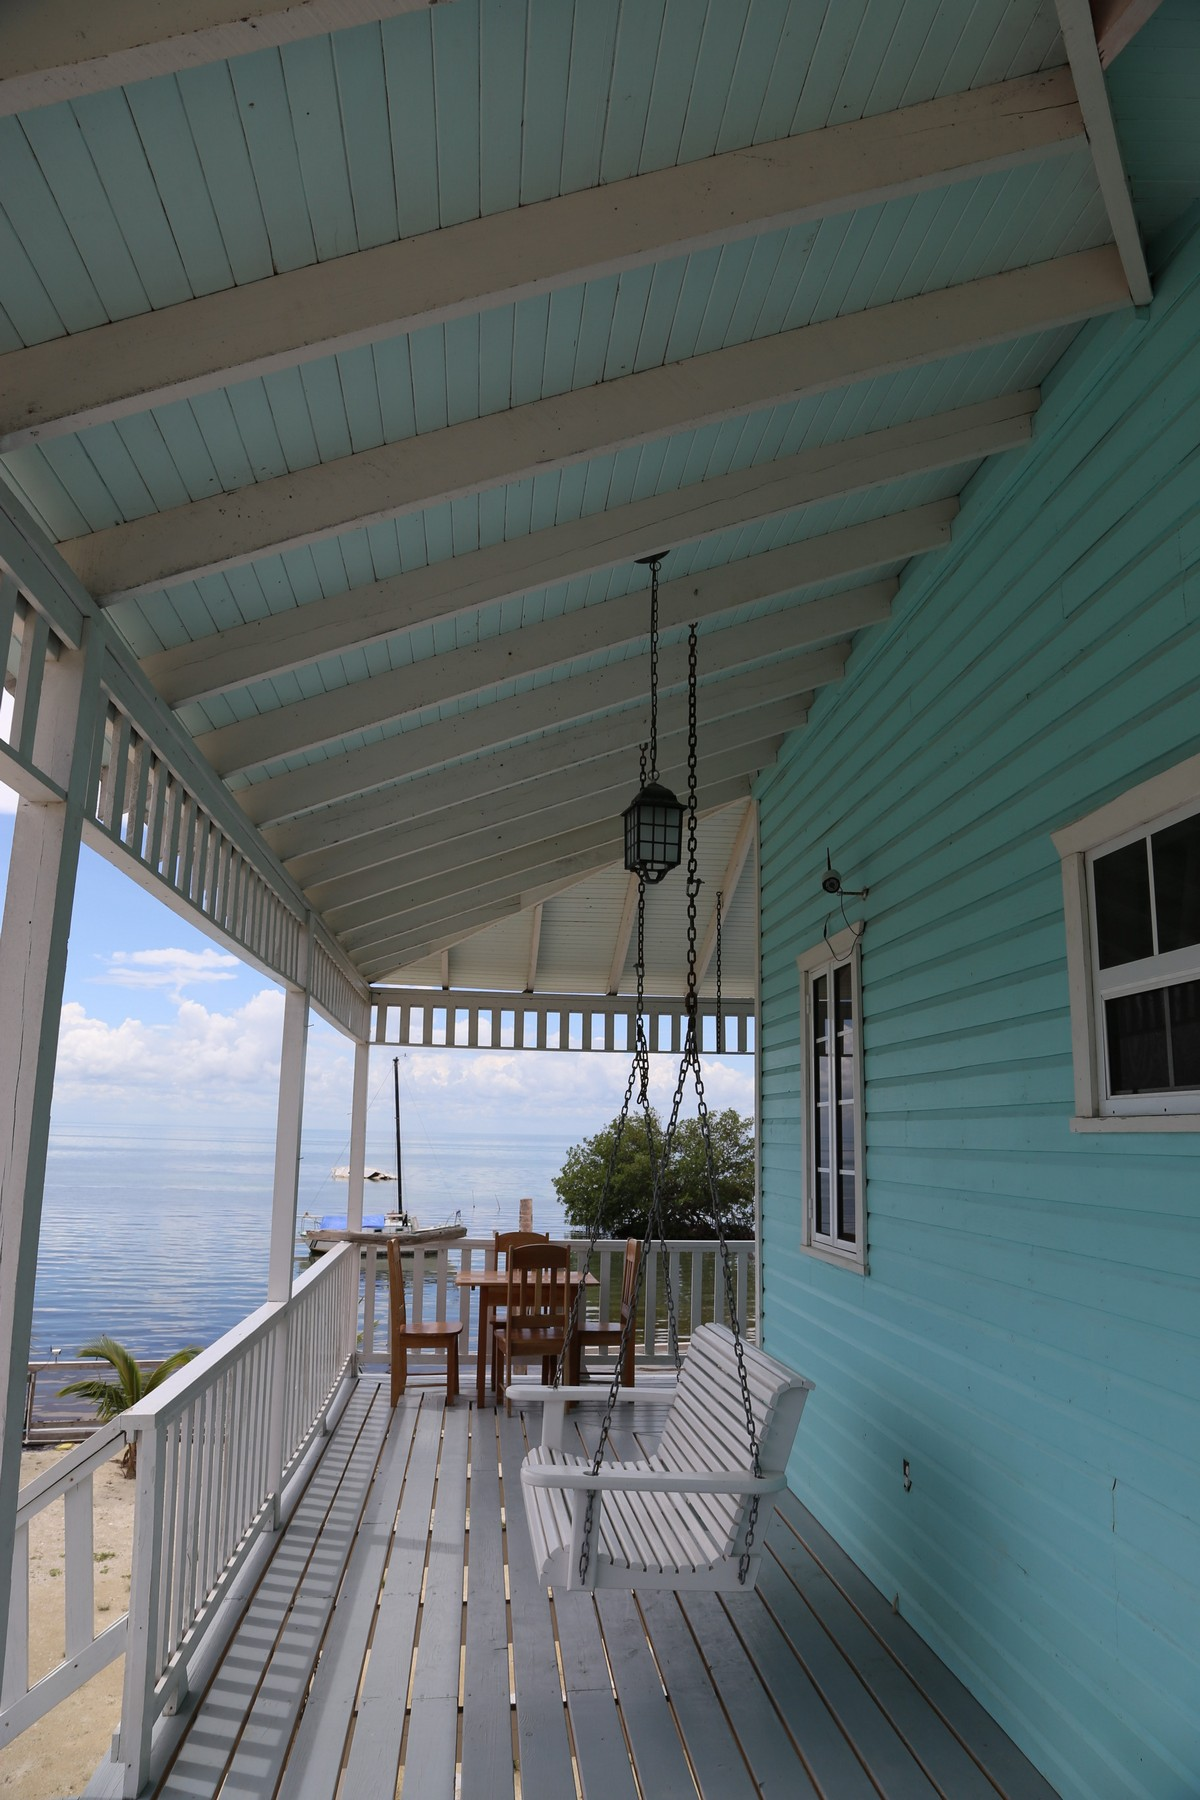 Multi-Family Home for Sale at Caye Caulker Oceanfront Caye Caulker, Belize, Belize